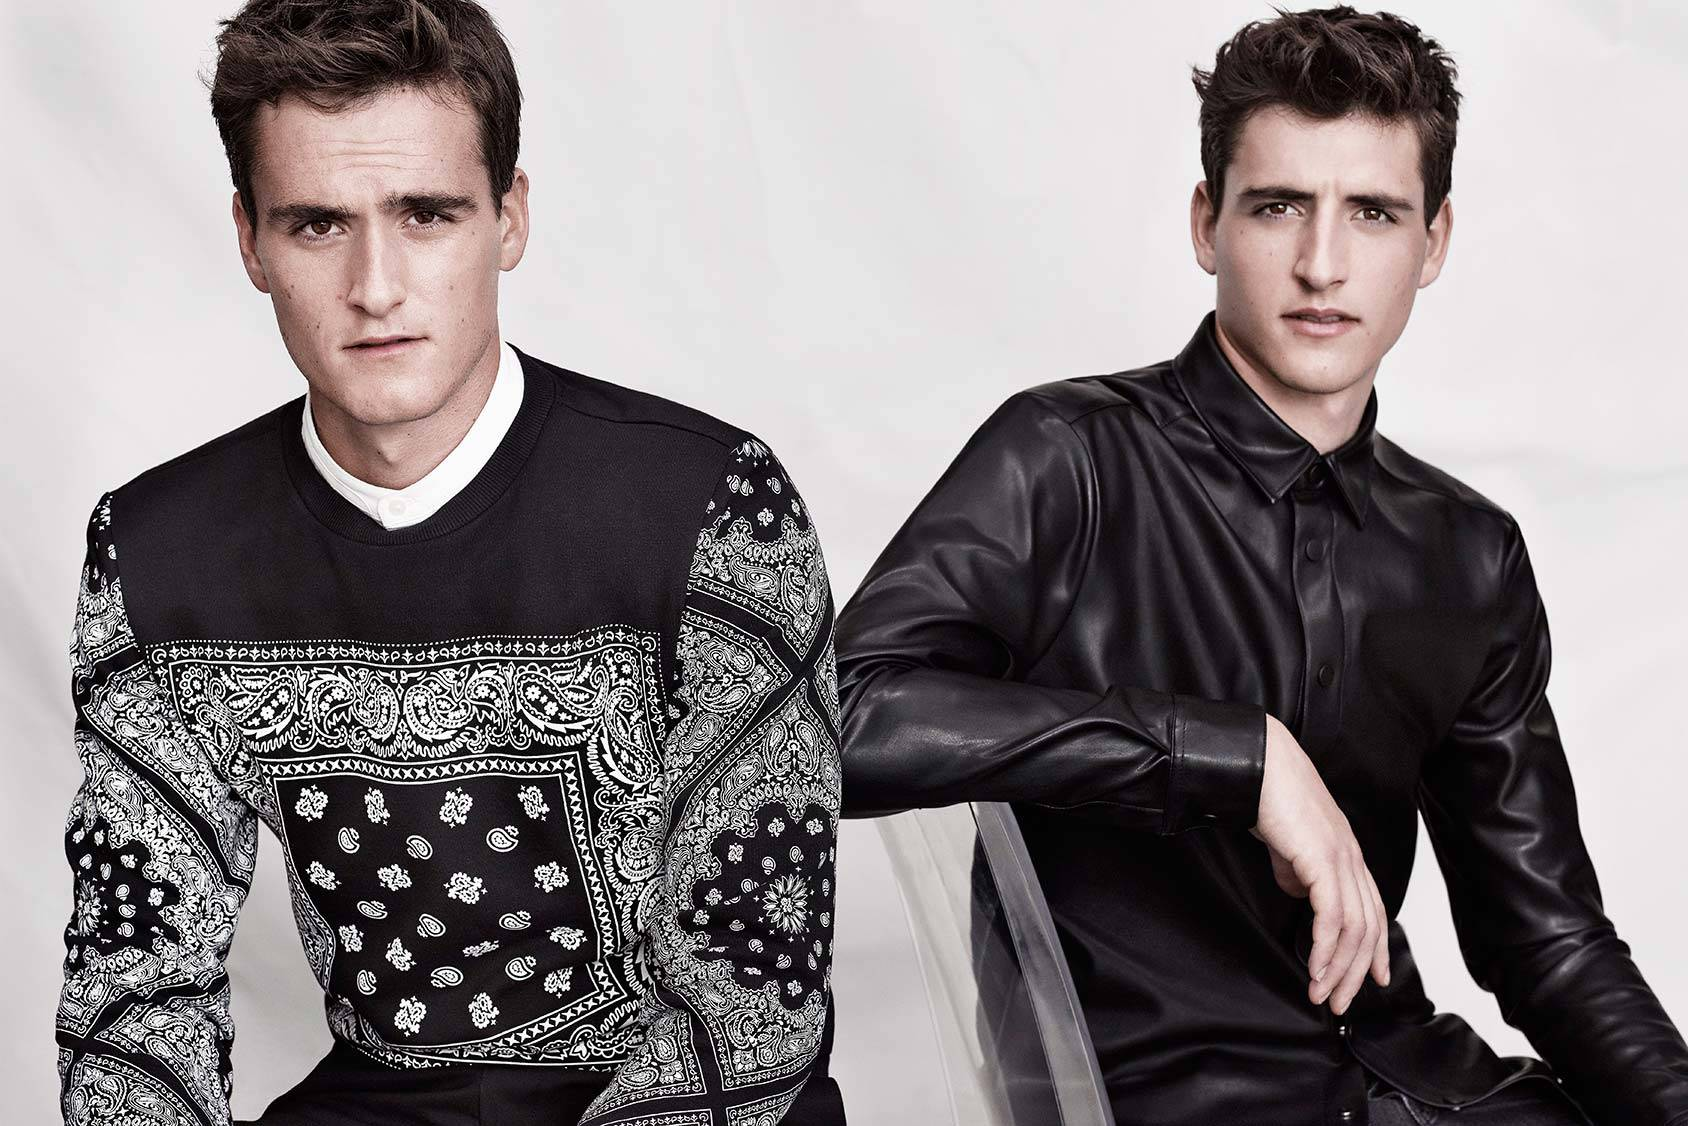 H&M recently signed a long-tern partnership with show jumping twins Nicola and Olivier Philippaerts. H&M Life asked the brothers about the future and the competition.